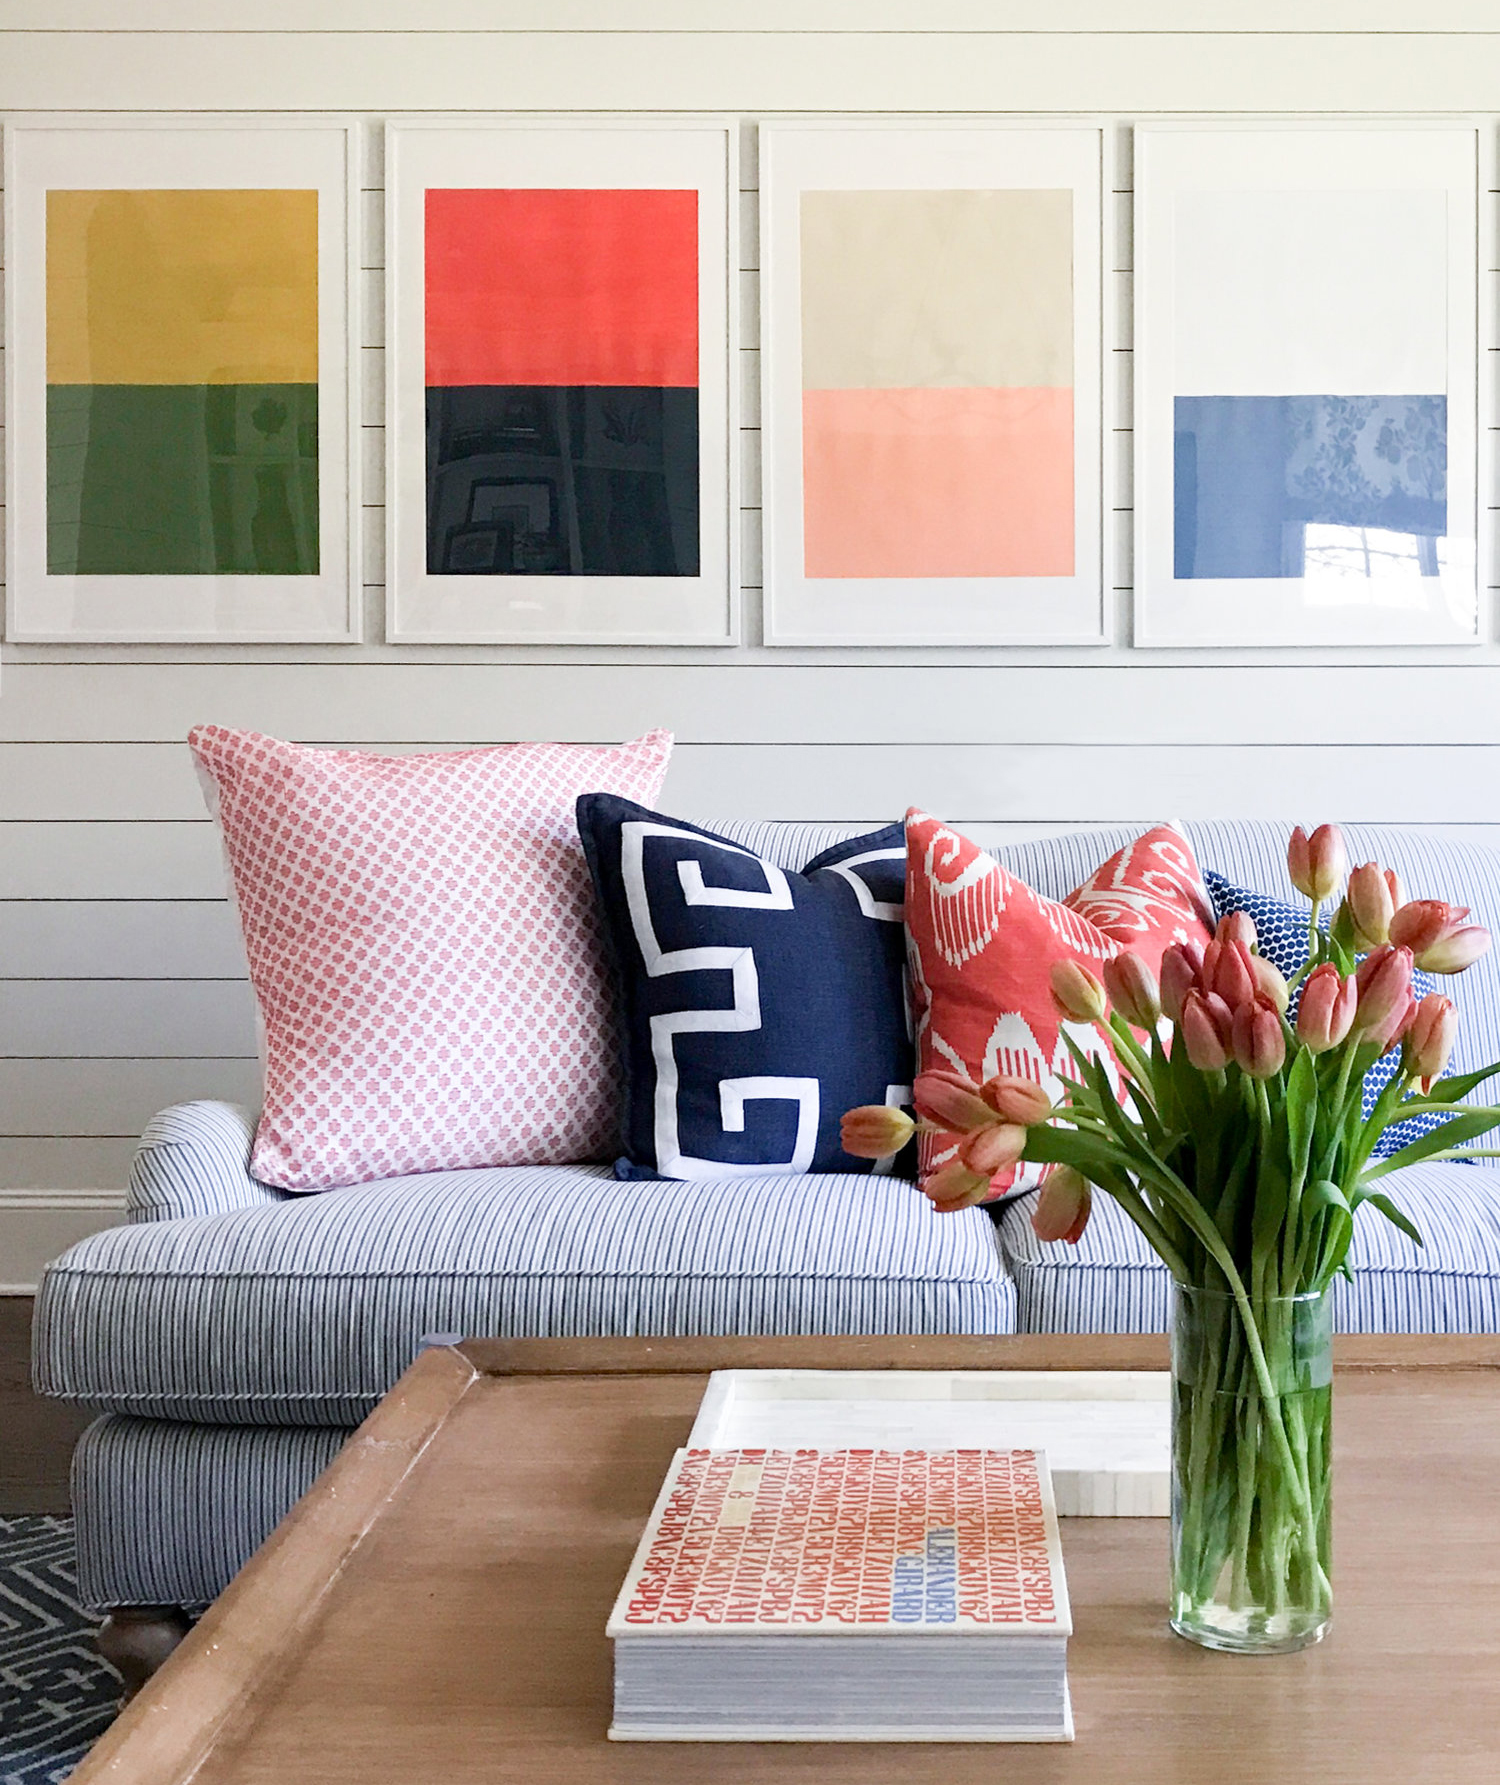 Invest a couch with a modern, informal sensibility by tossing on odd number of throw pillows. For something more traditional, do an even number.